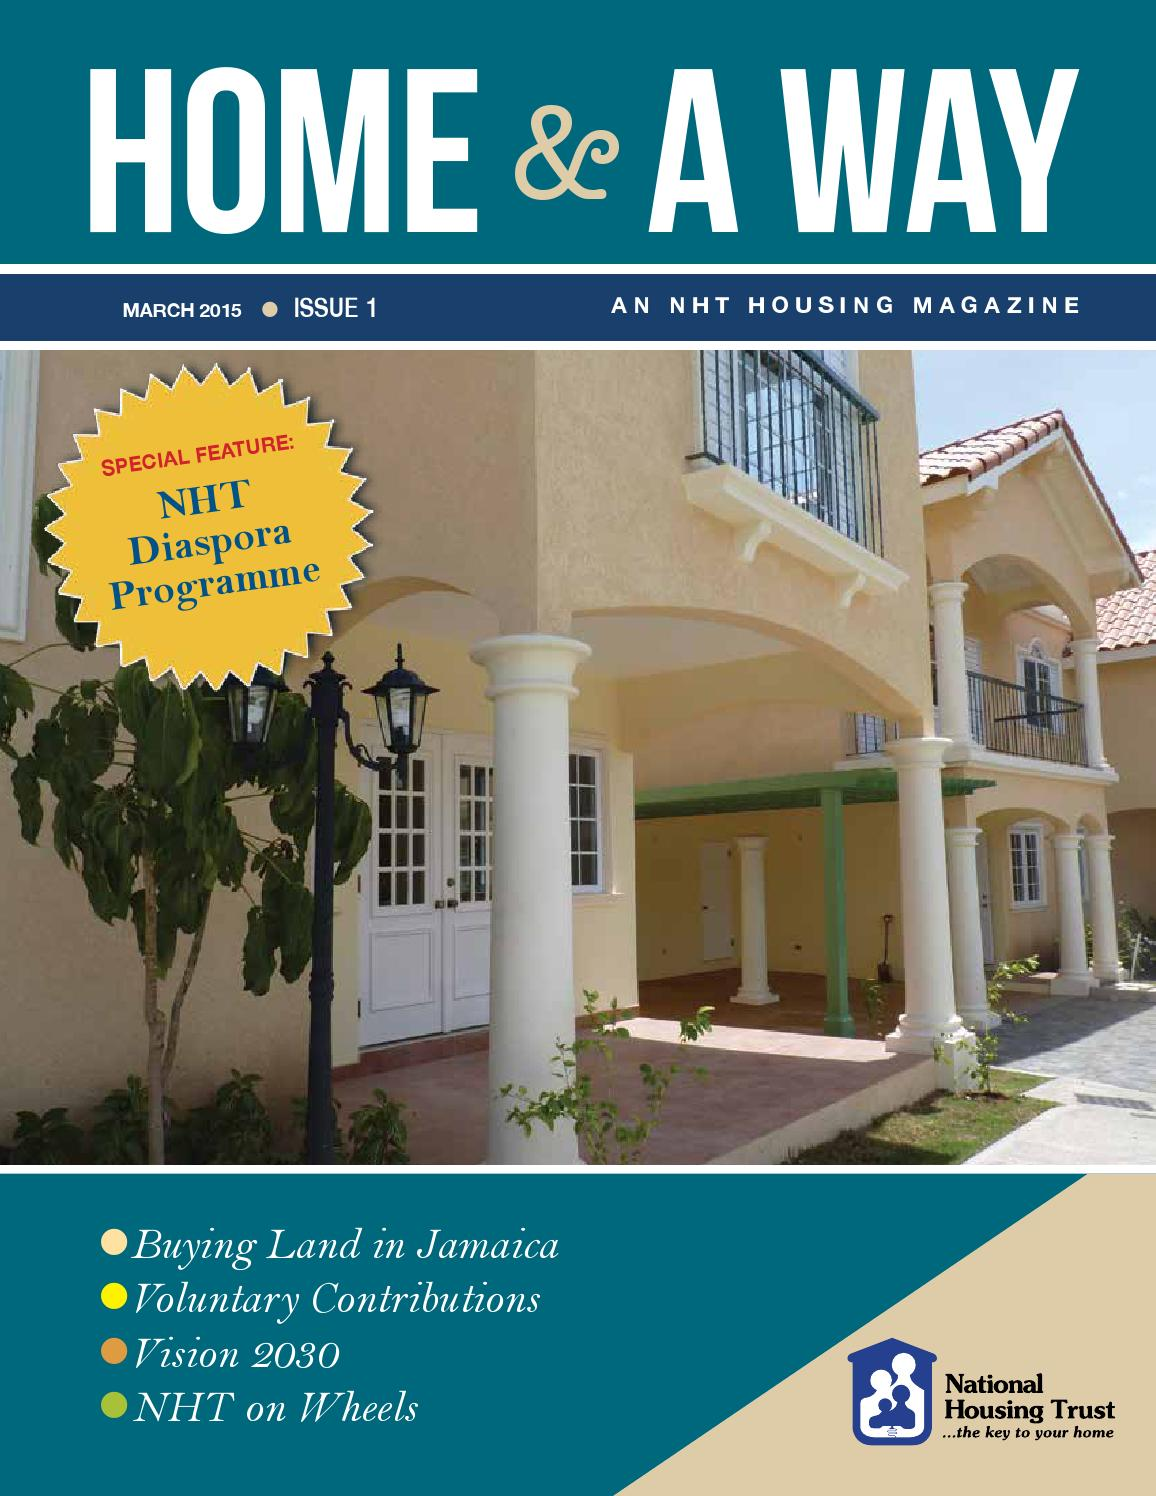 home & a way by the national housing trust - issuu